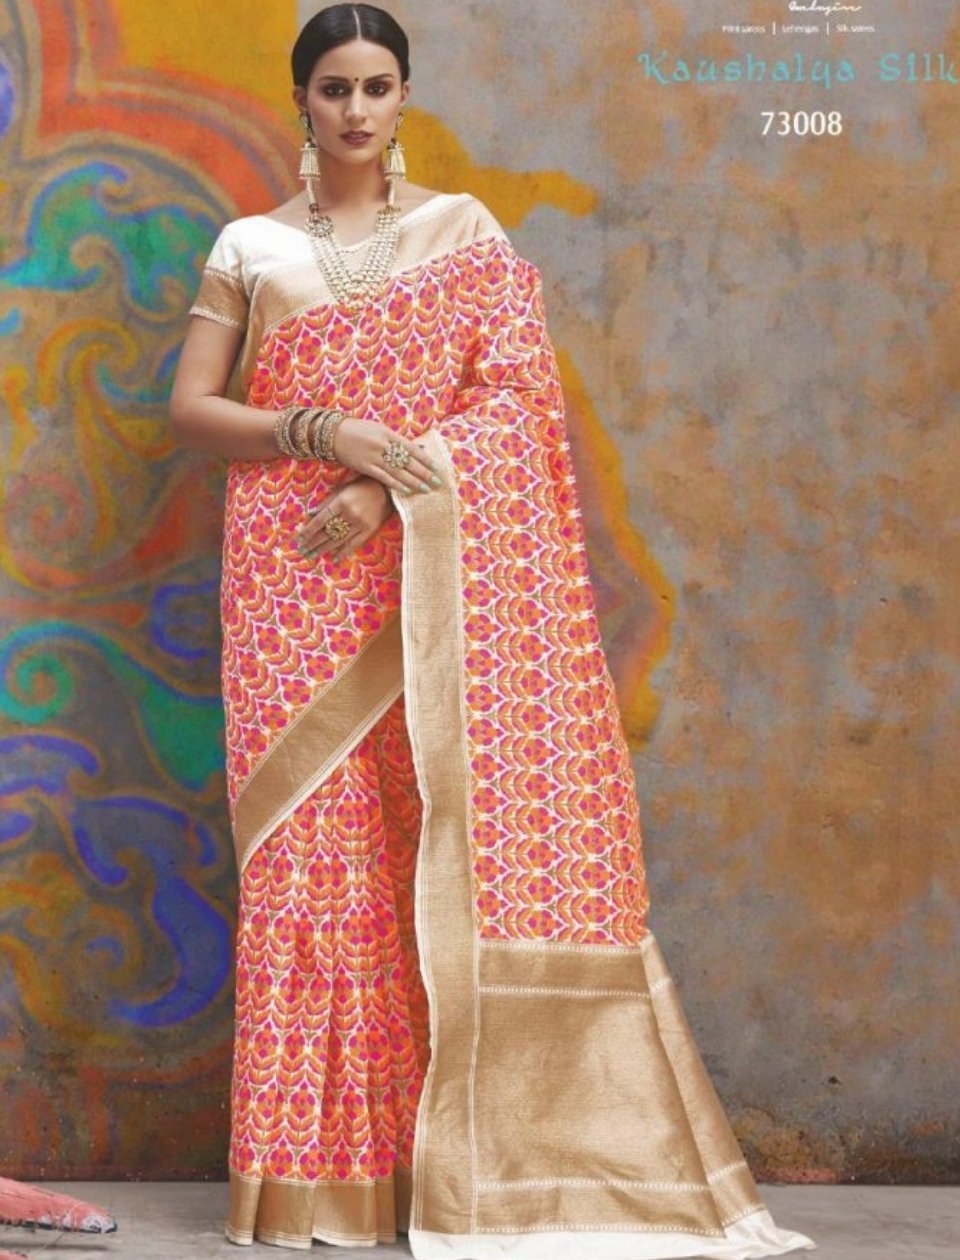 Pleasing RAJ73008 Brilliant Multicoloured Handloom Weaving Silk Saree by Fashion Nation